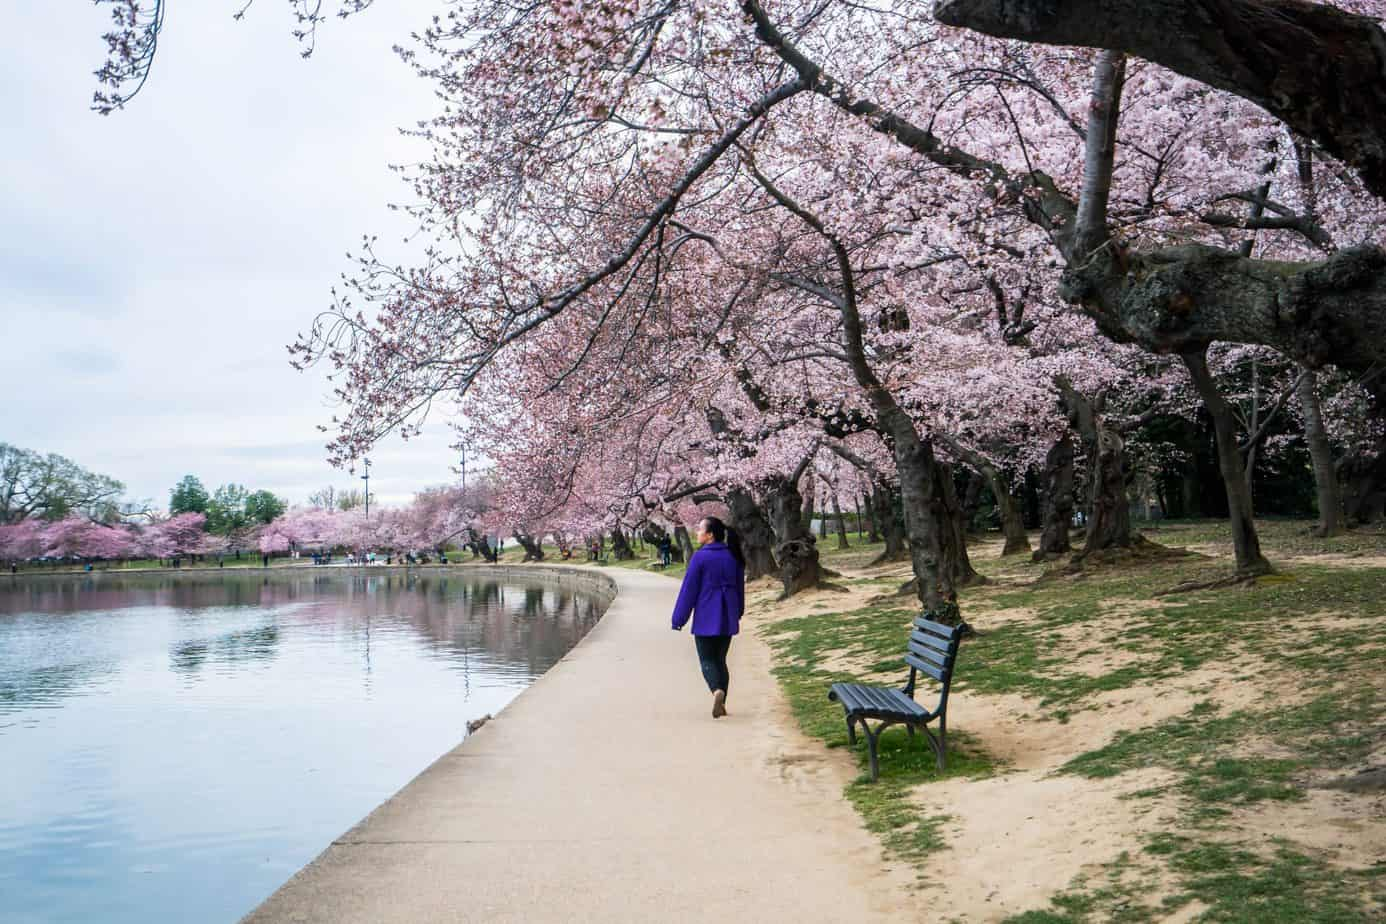 romantic things to do in DC - header image - girl walking near water under cherry blossoms